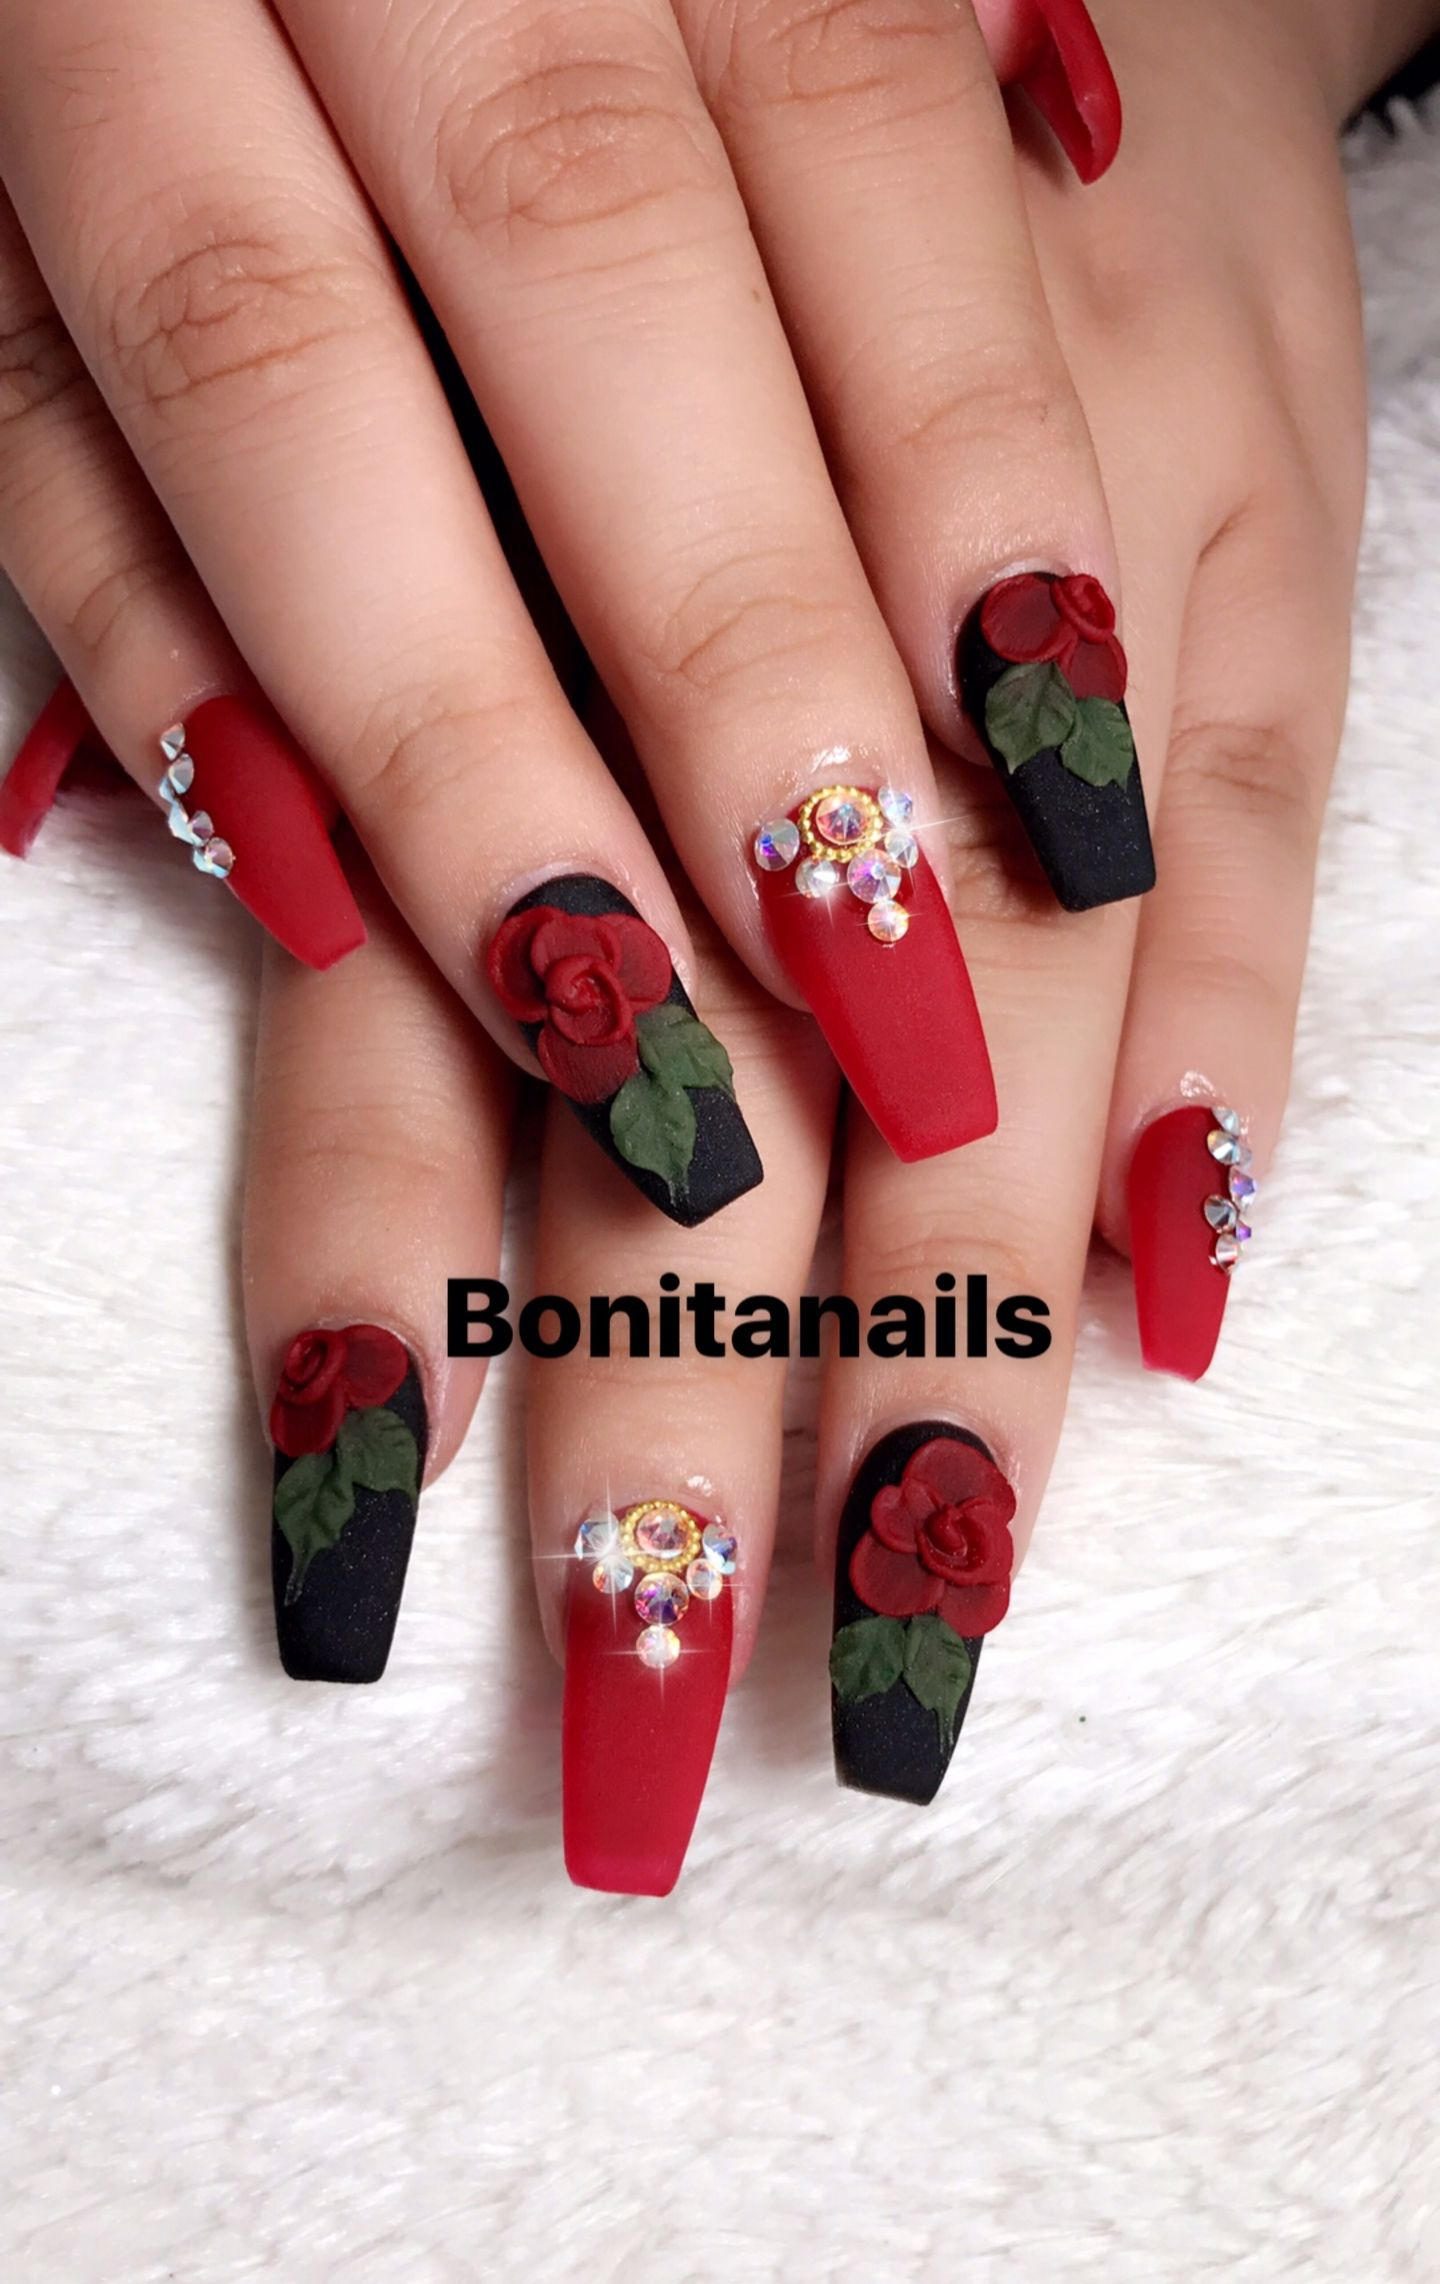 Black And Red Nails Wtih Pearls And Red Acrylic Roses Nail Art Mexican Nails Red Acrylic Nails Rose Nail Art